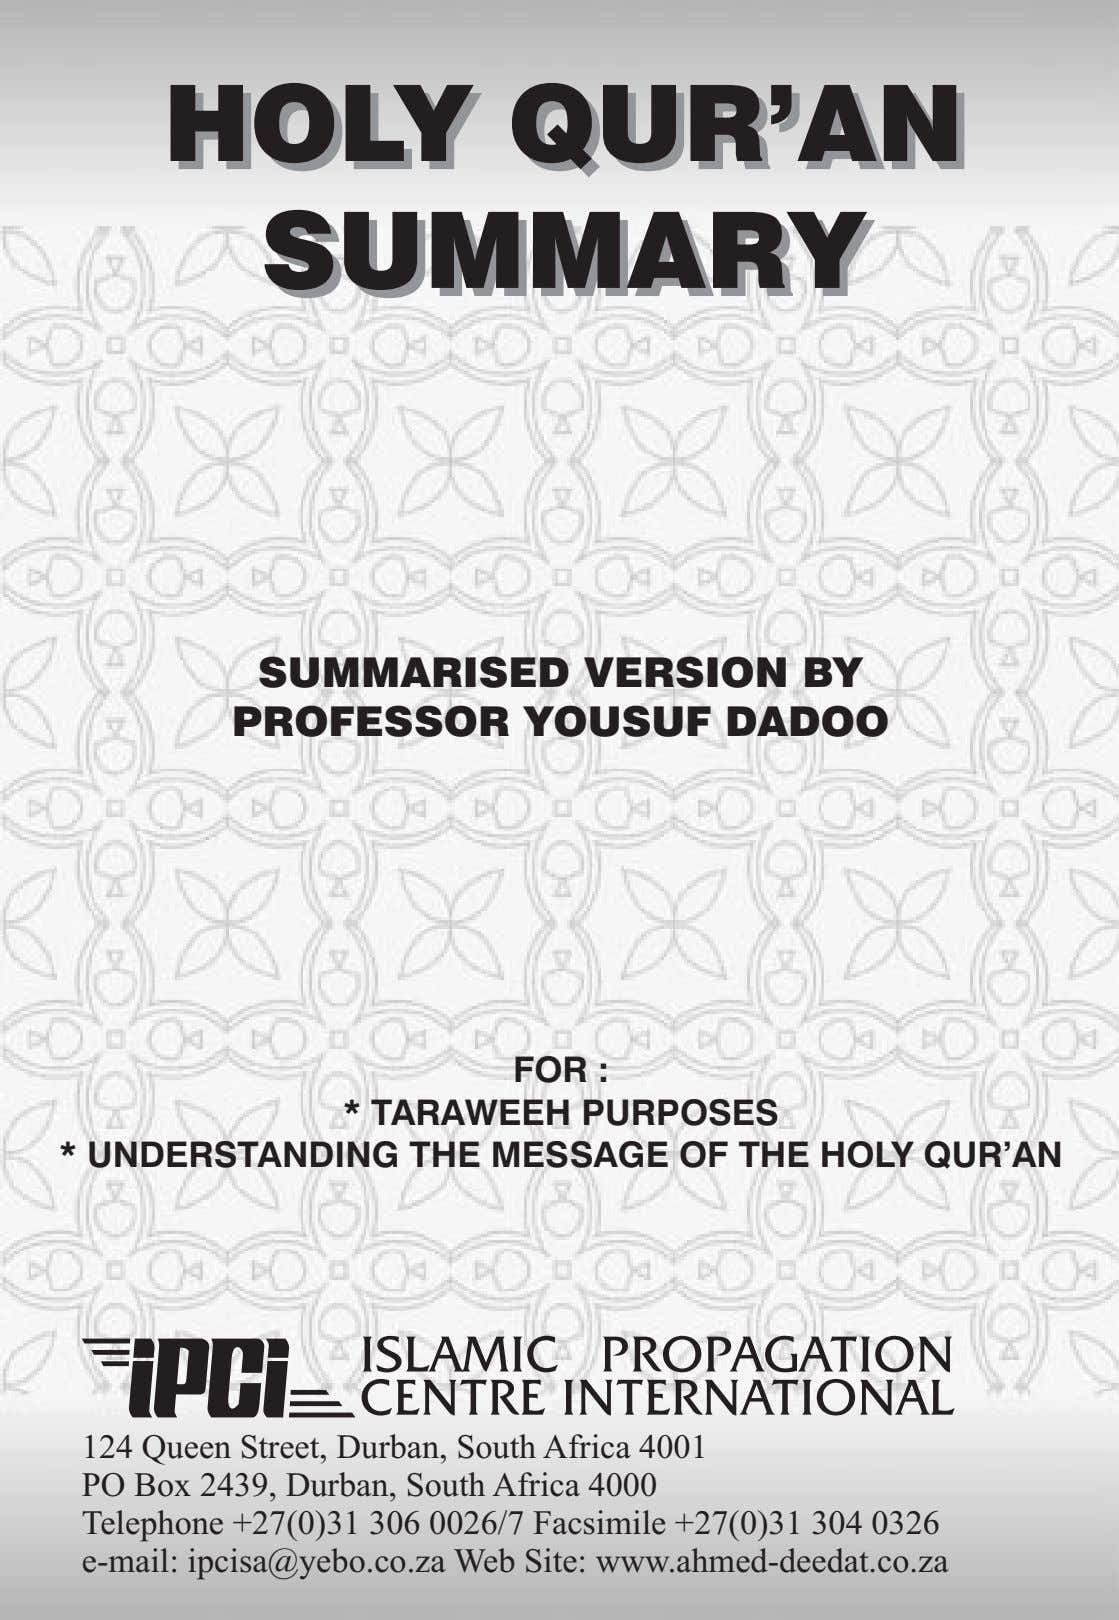 HOLY HOLY QUR'AN QUR'AN SUMMARY SUMMARY SUMMARISED VERSION BY PROFESSOR YOUSUF DADOO FOR : *